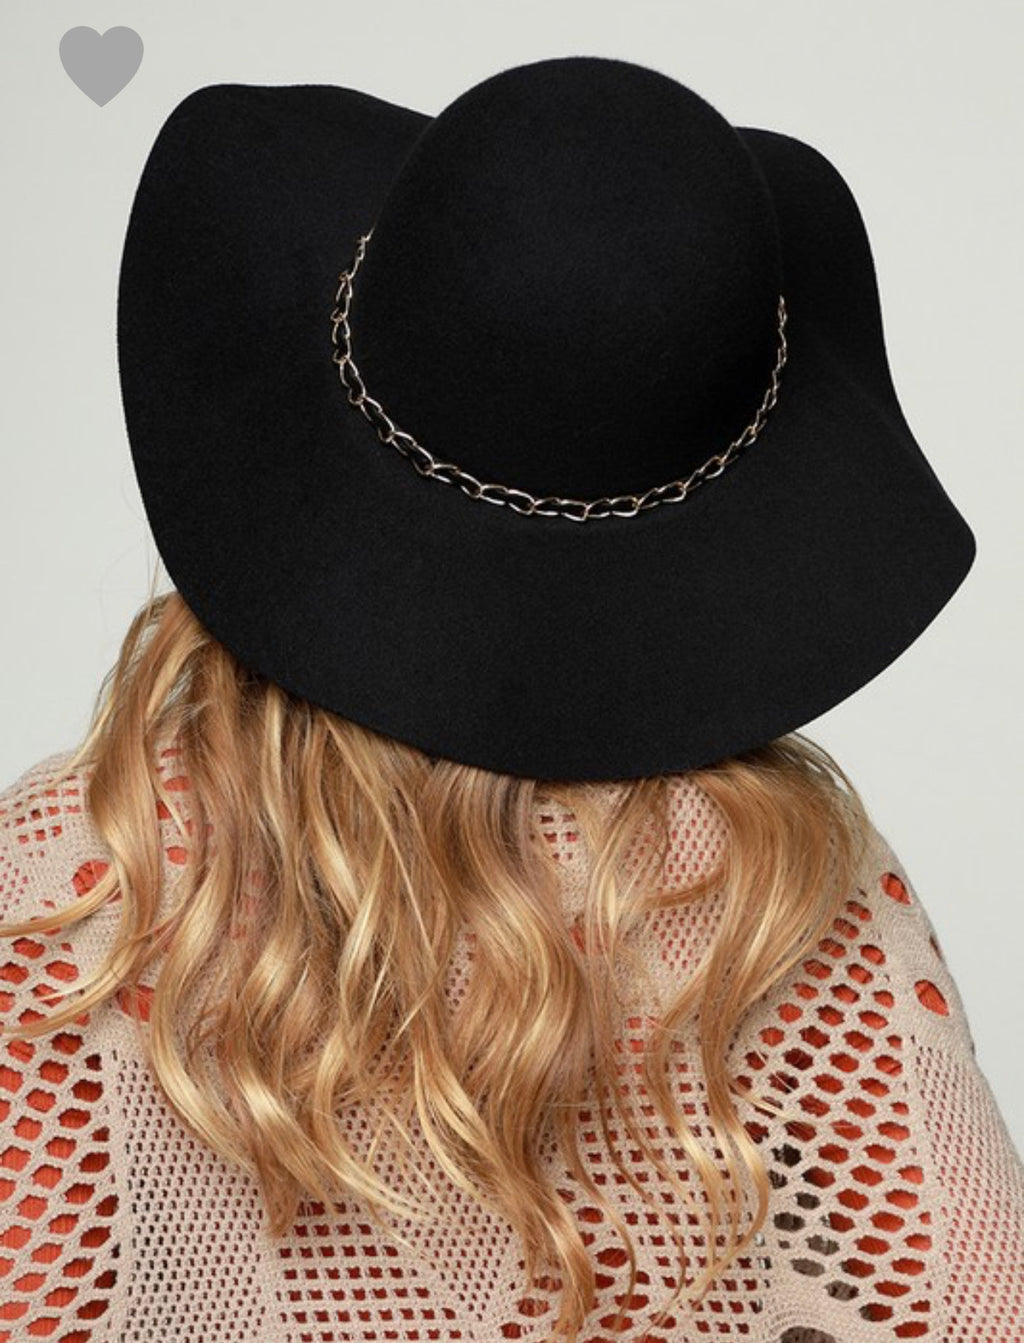 BLACK FLOPPY HAT WITH GOLD BAND DETAIL